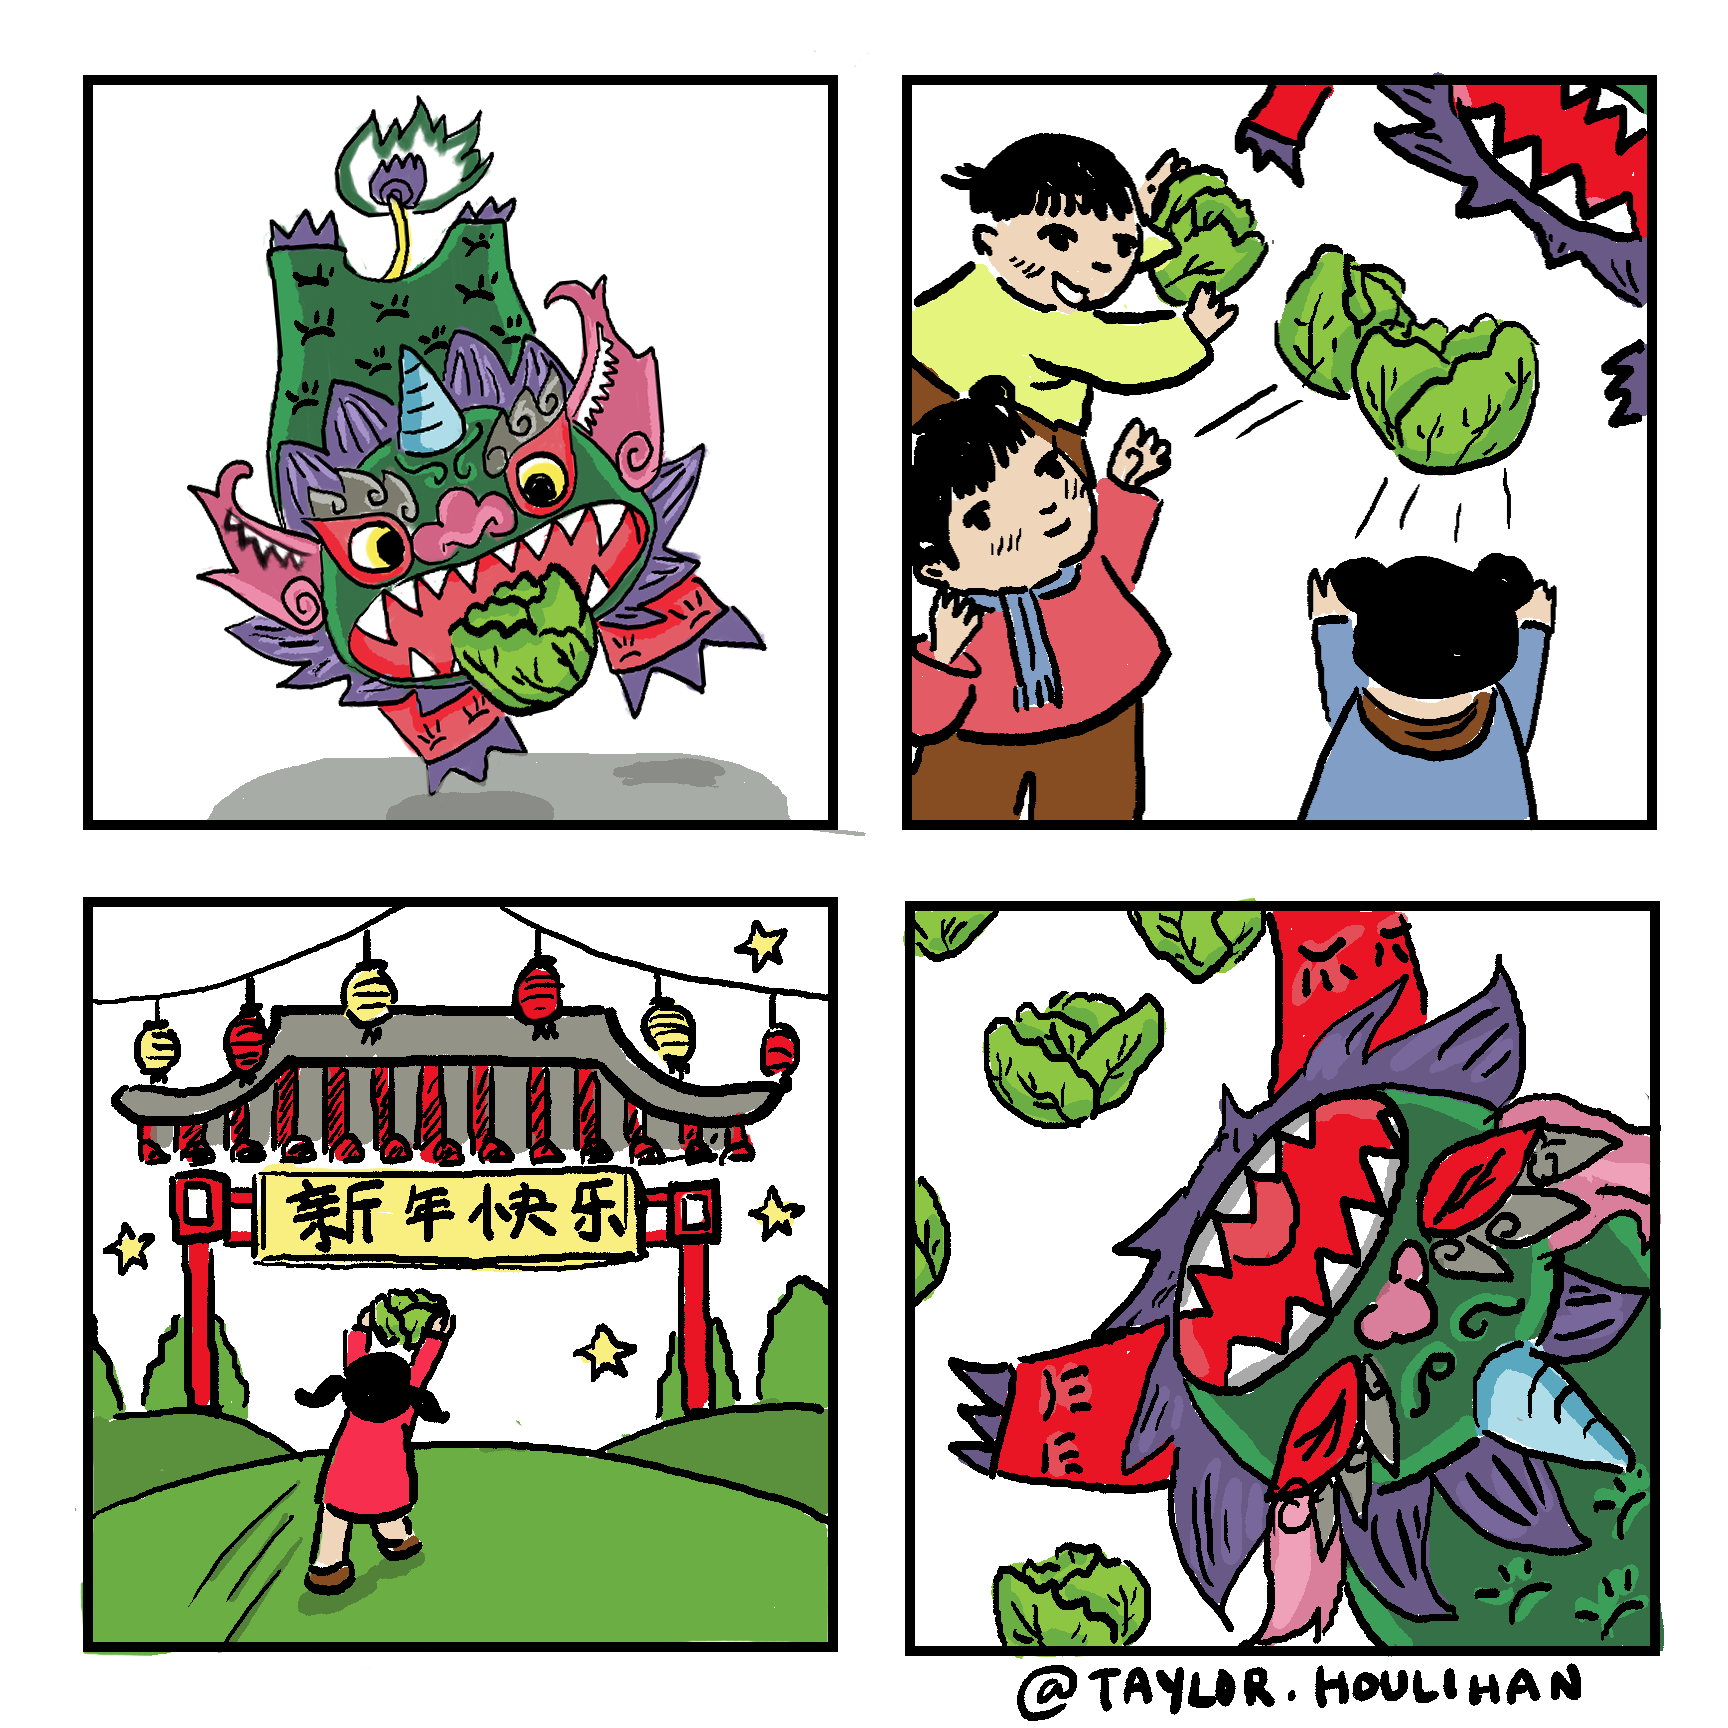 chinesenewyearcomic_4.png